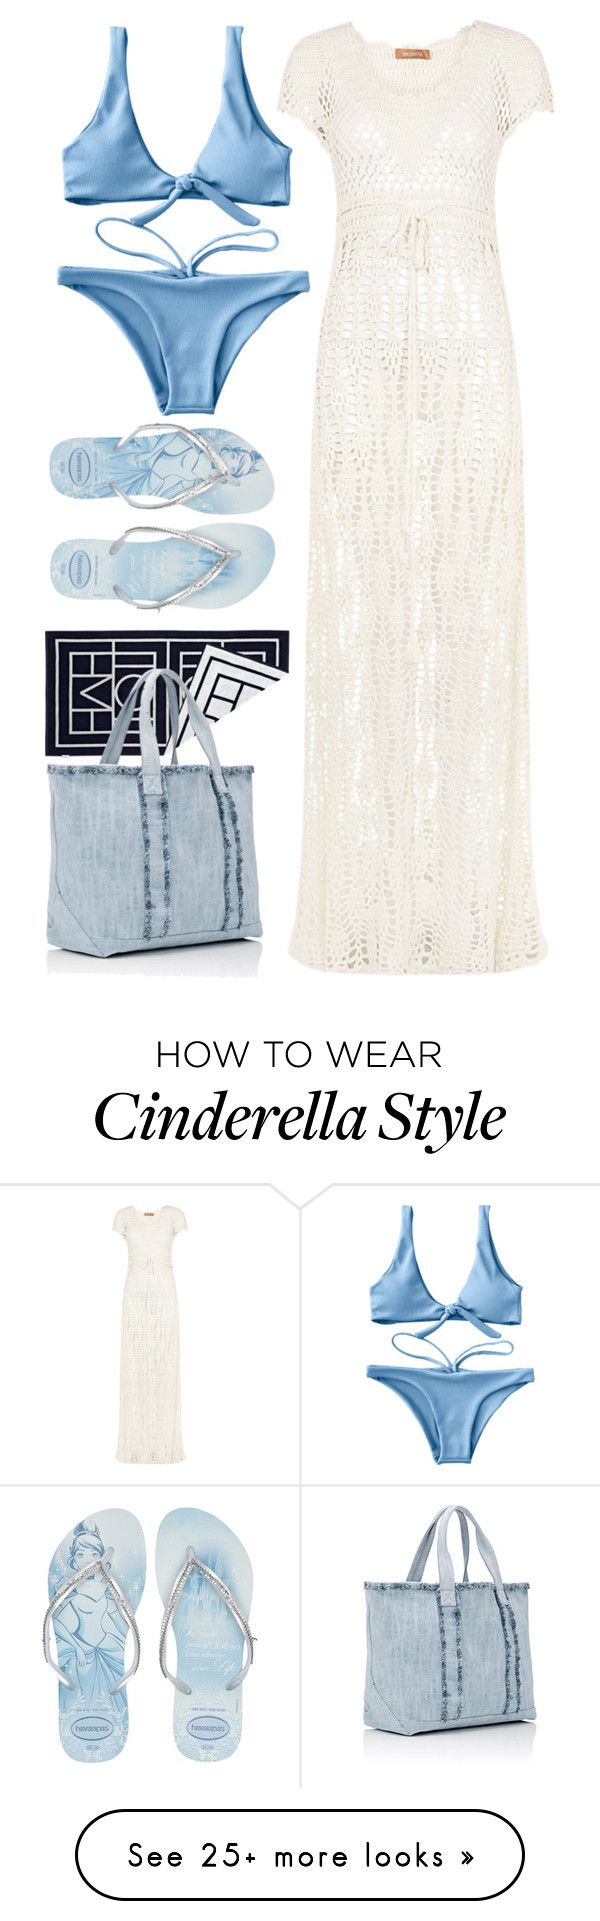 """""""Sunset today is gonna be awesome"""" by rahayudiah on Polyvore featuring Meskita, Havaianas, Biarritz and Barneys New York"""